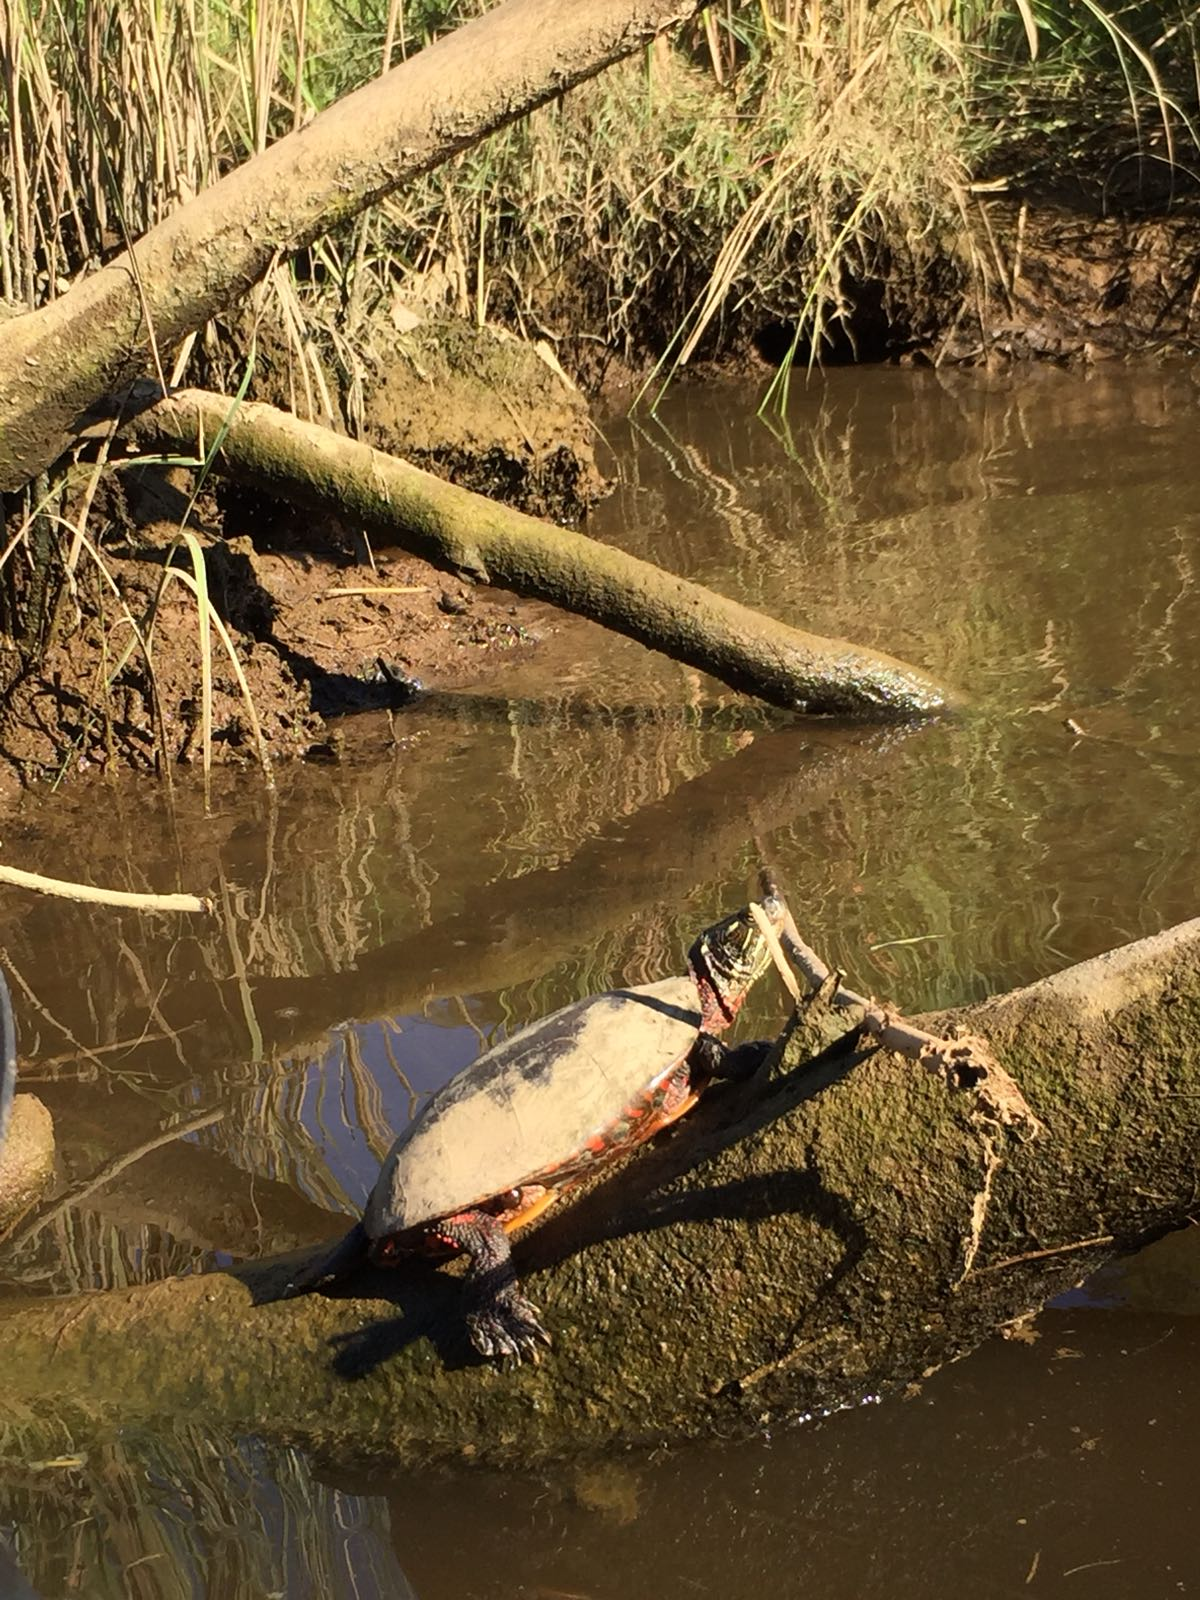 This is a Maryland Terrapin, an endangered turtle species. He is sunning on a beaver log.